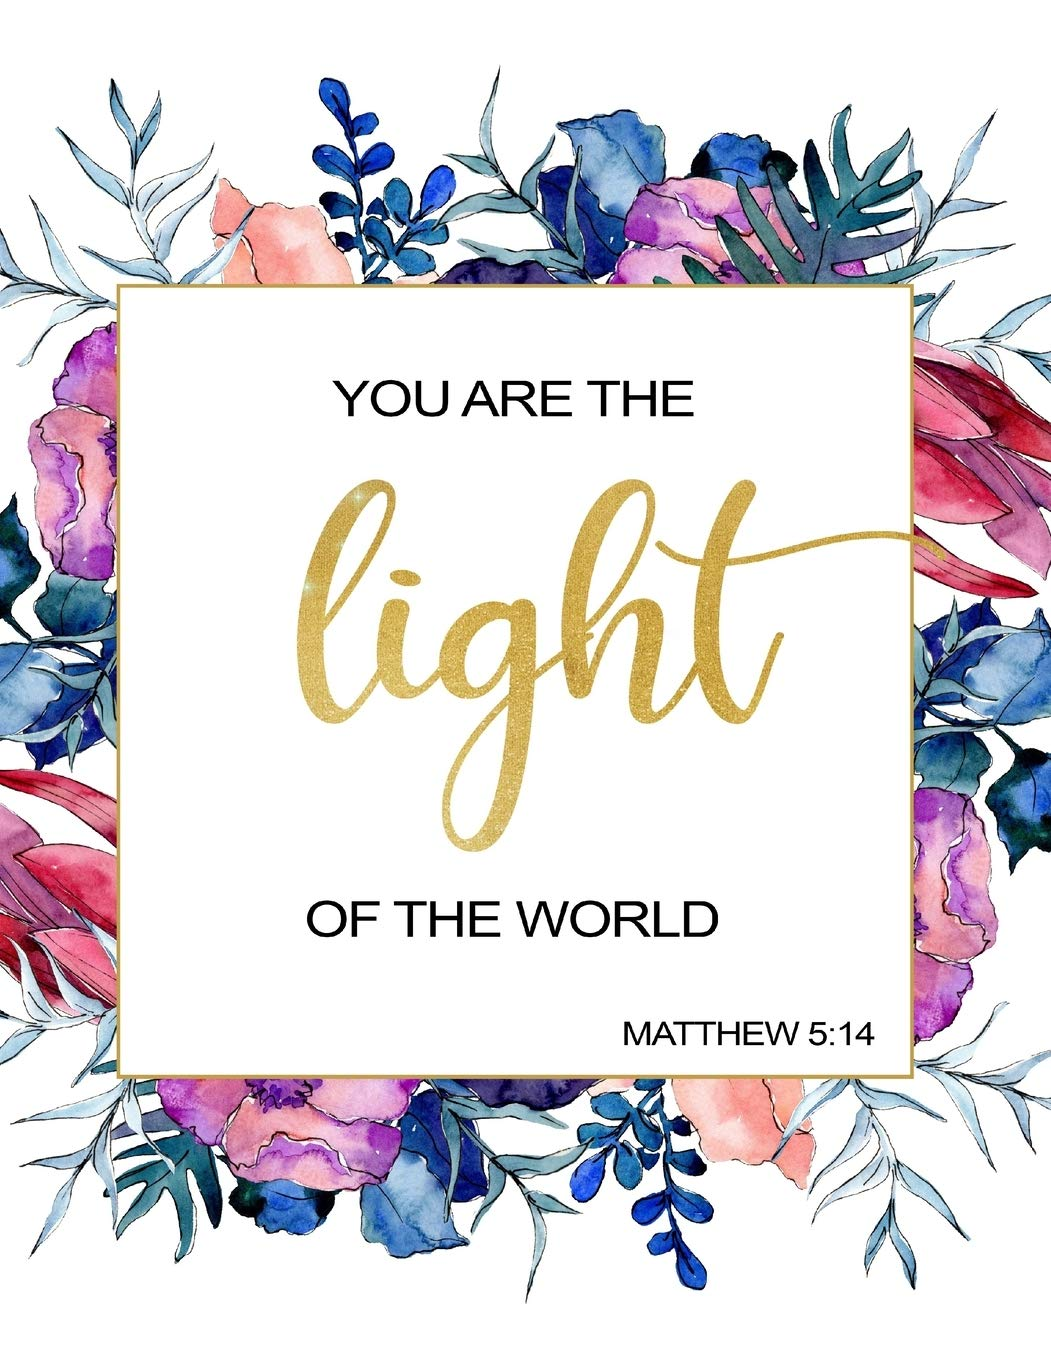 Light The World 2022 Calendar.You Are The Light Of The World Matthew 5 14 Monthly Planner With Bible Verses 3 Year Calendar Planner 2020 2022 At A Glance Calendar Christian Journal Planner Phoenix River 9781691925001 Amazon Com Books